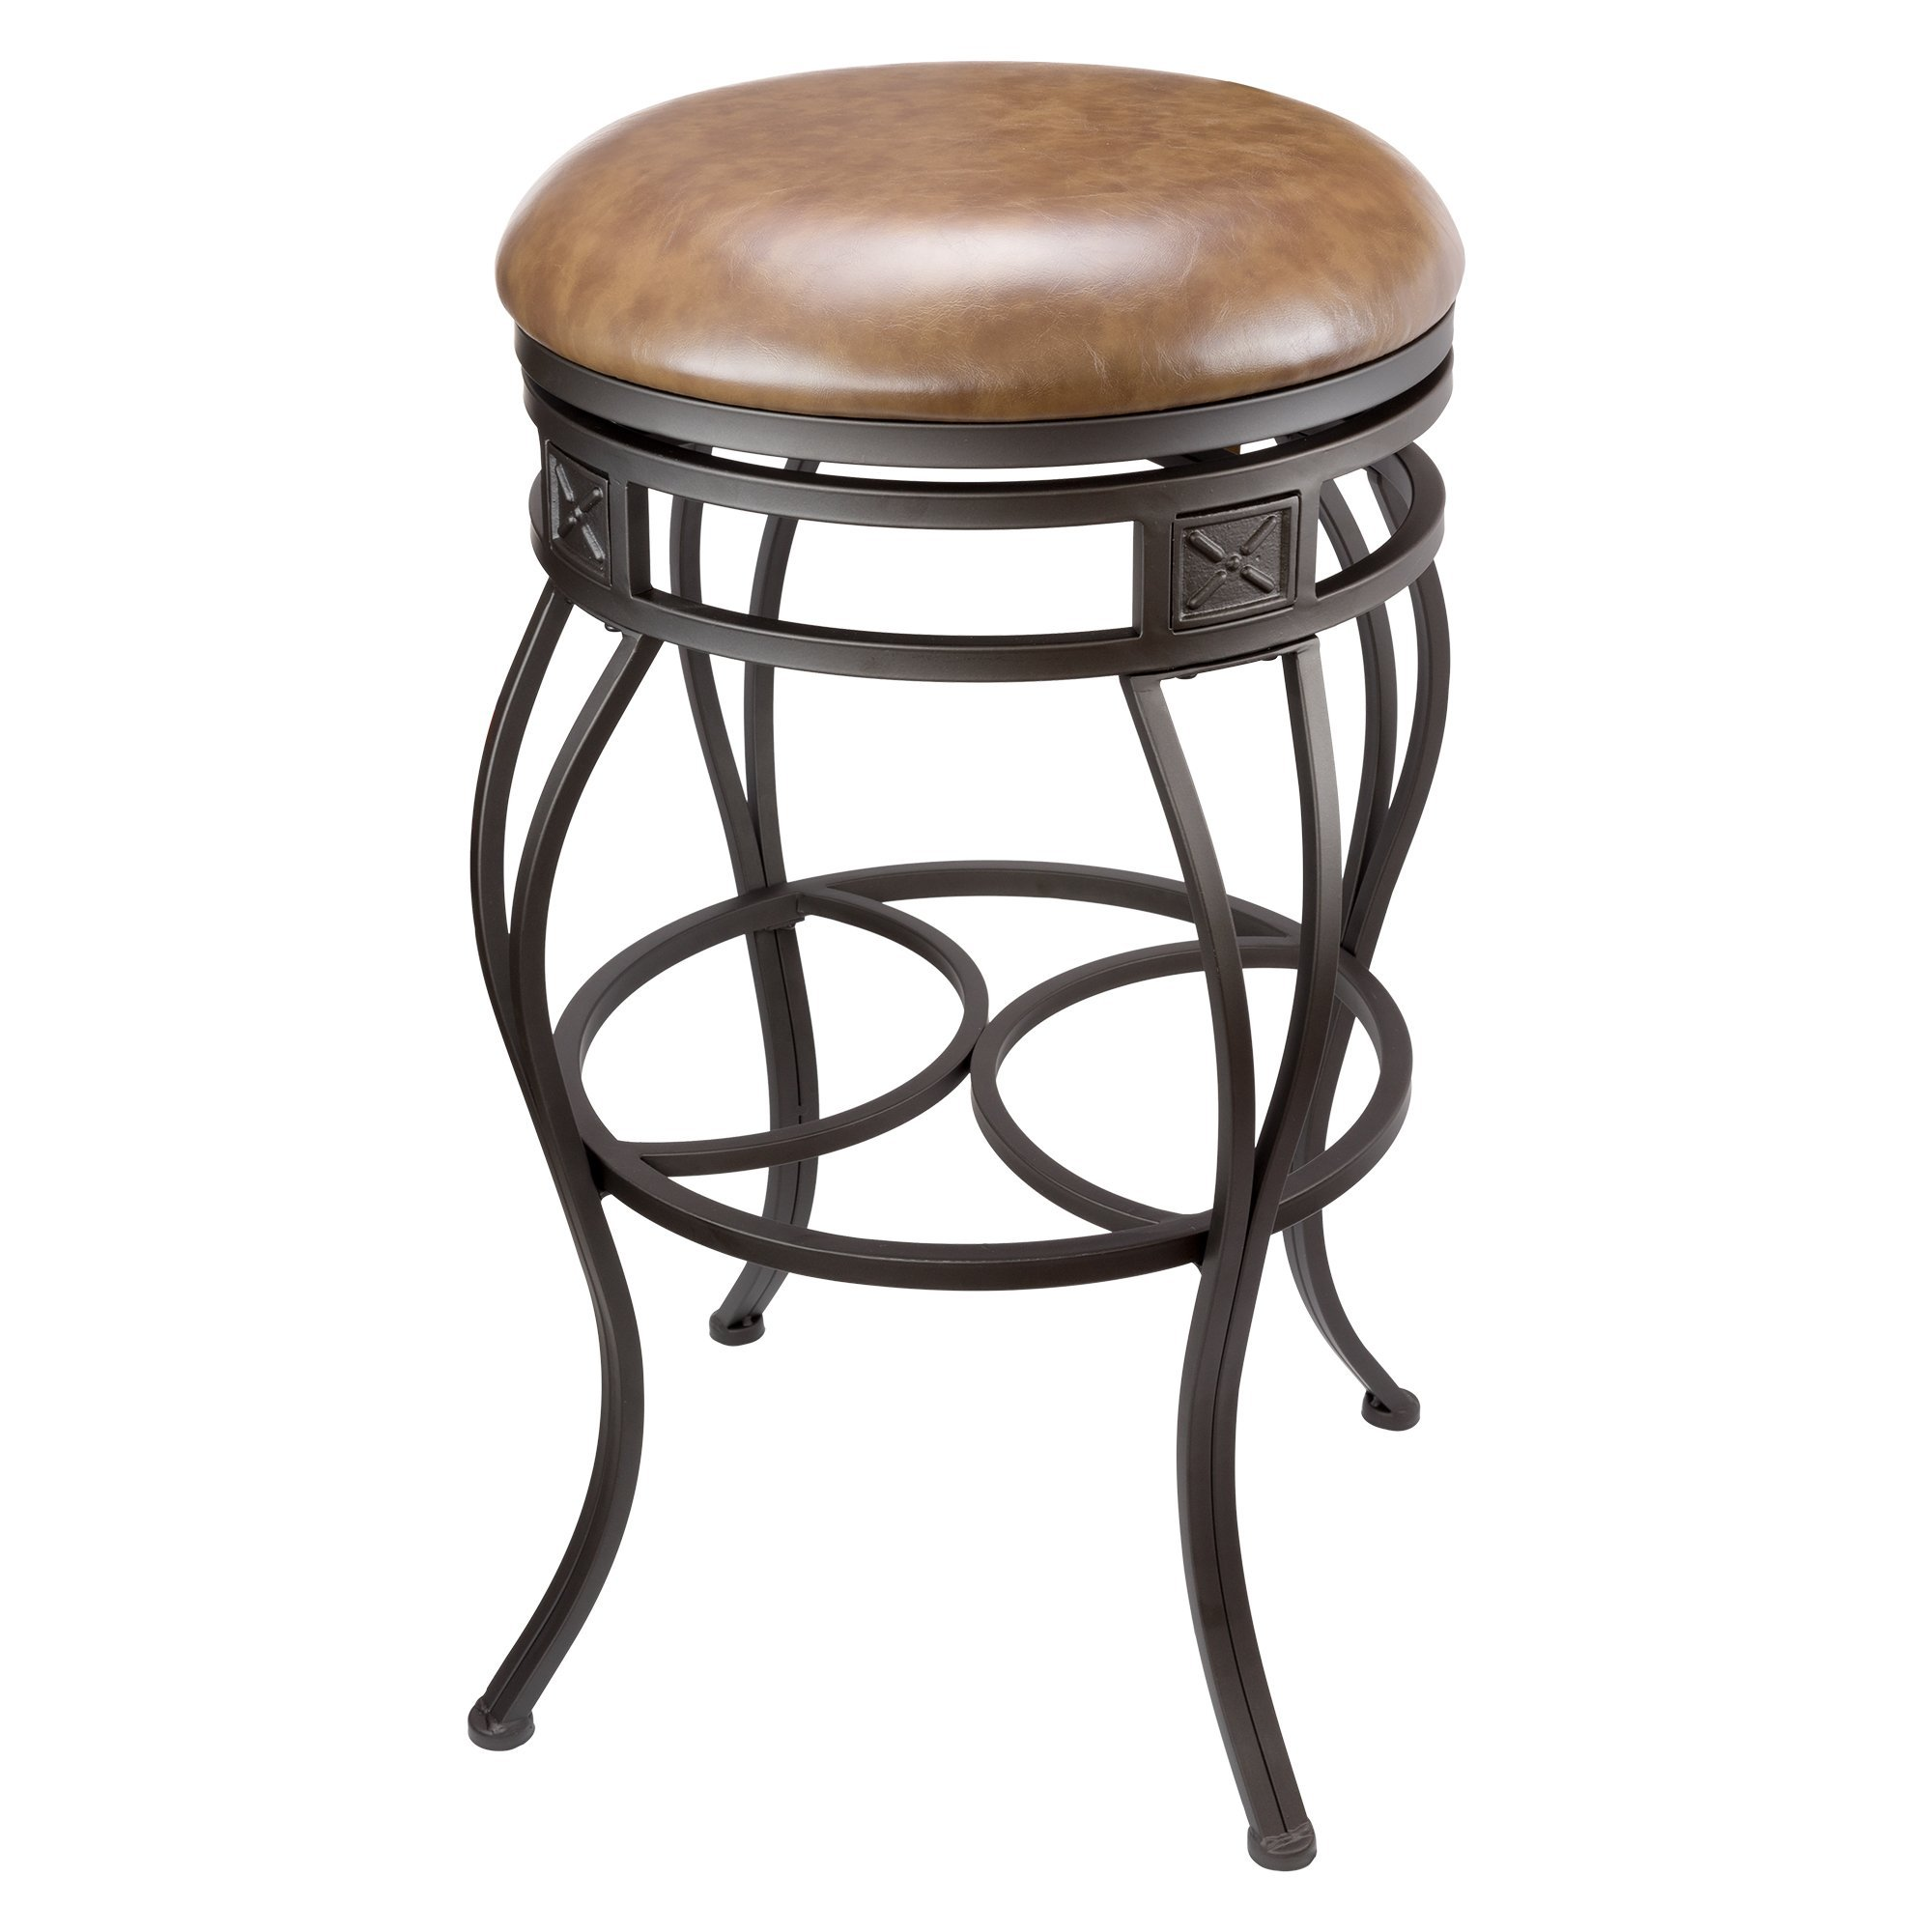 Revel Monarch 30'' Backless Swivel Bar Stool, Old Steel Finish, Brown Faux Leather Seat